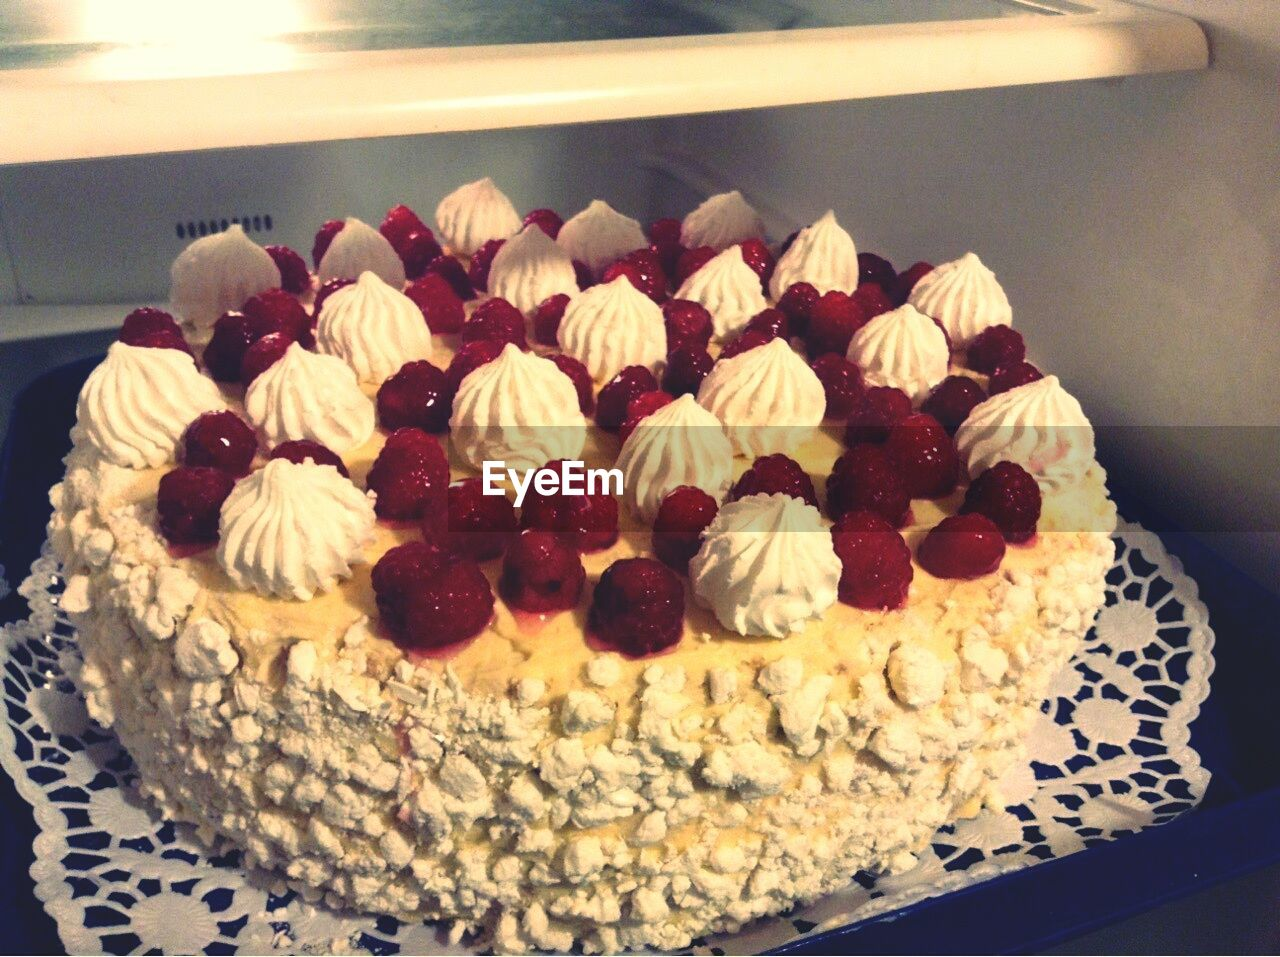 food and drink, sweet food, indulgence, food, freshness, temptation, dessert, cake, ready-to-eat, baked, indoors, still life, unhealthy eating, table, homemade, celebration, serving size, no people, birthday cake, gourmet, plate, cupcake, close-up, dessert topping, day